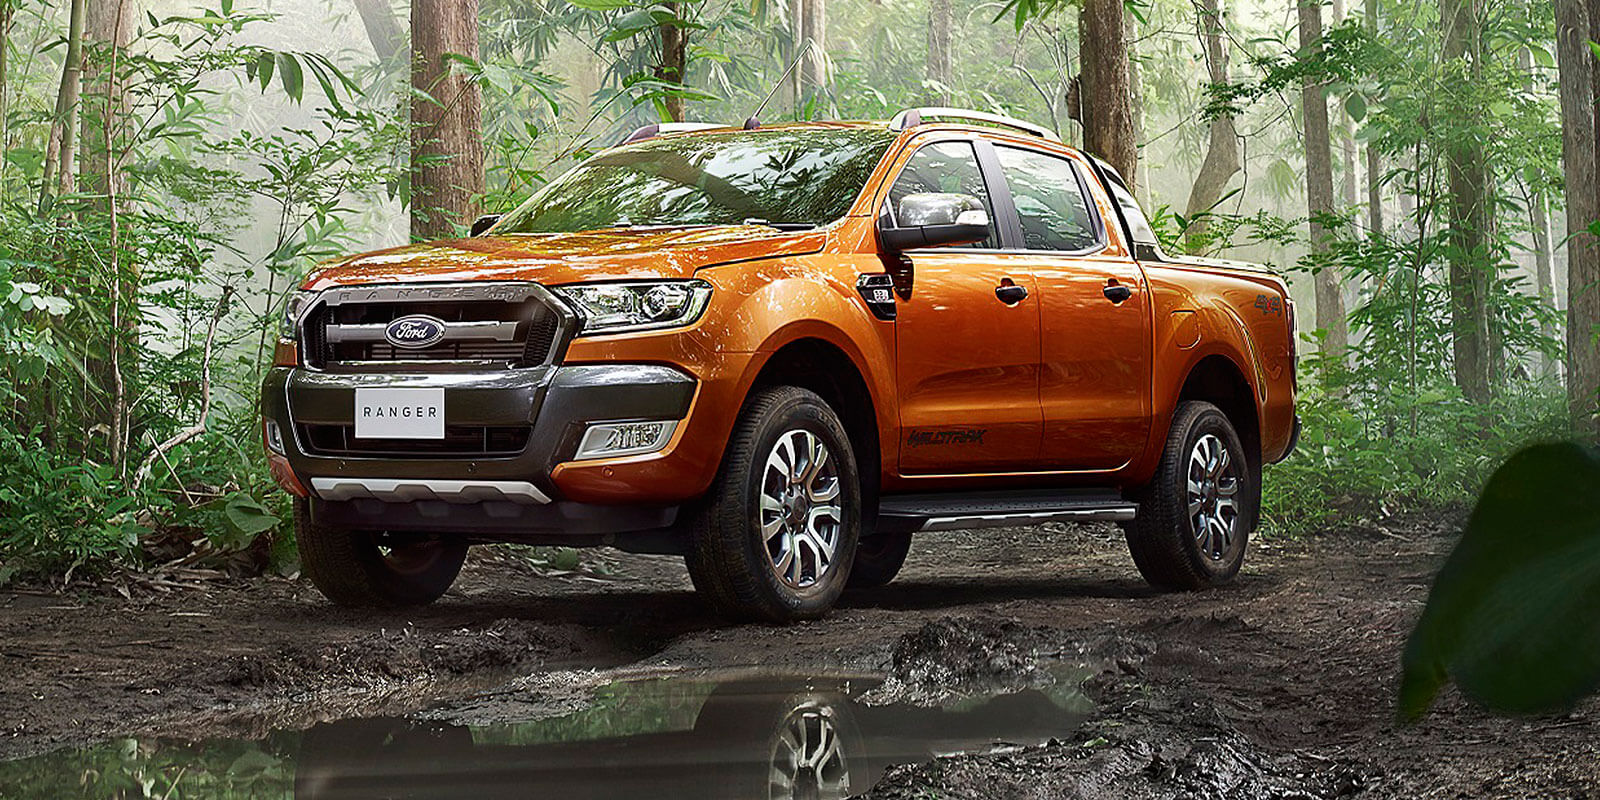 ford s ranger to sell in china from 2018 goautonews premium. Black Bedroom Furniture Sets. Home Design Ideas